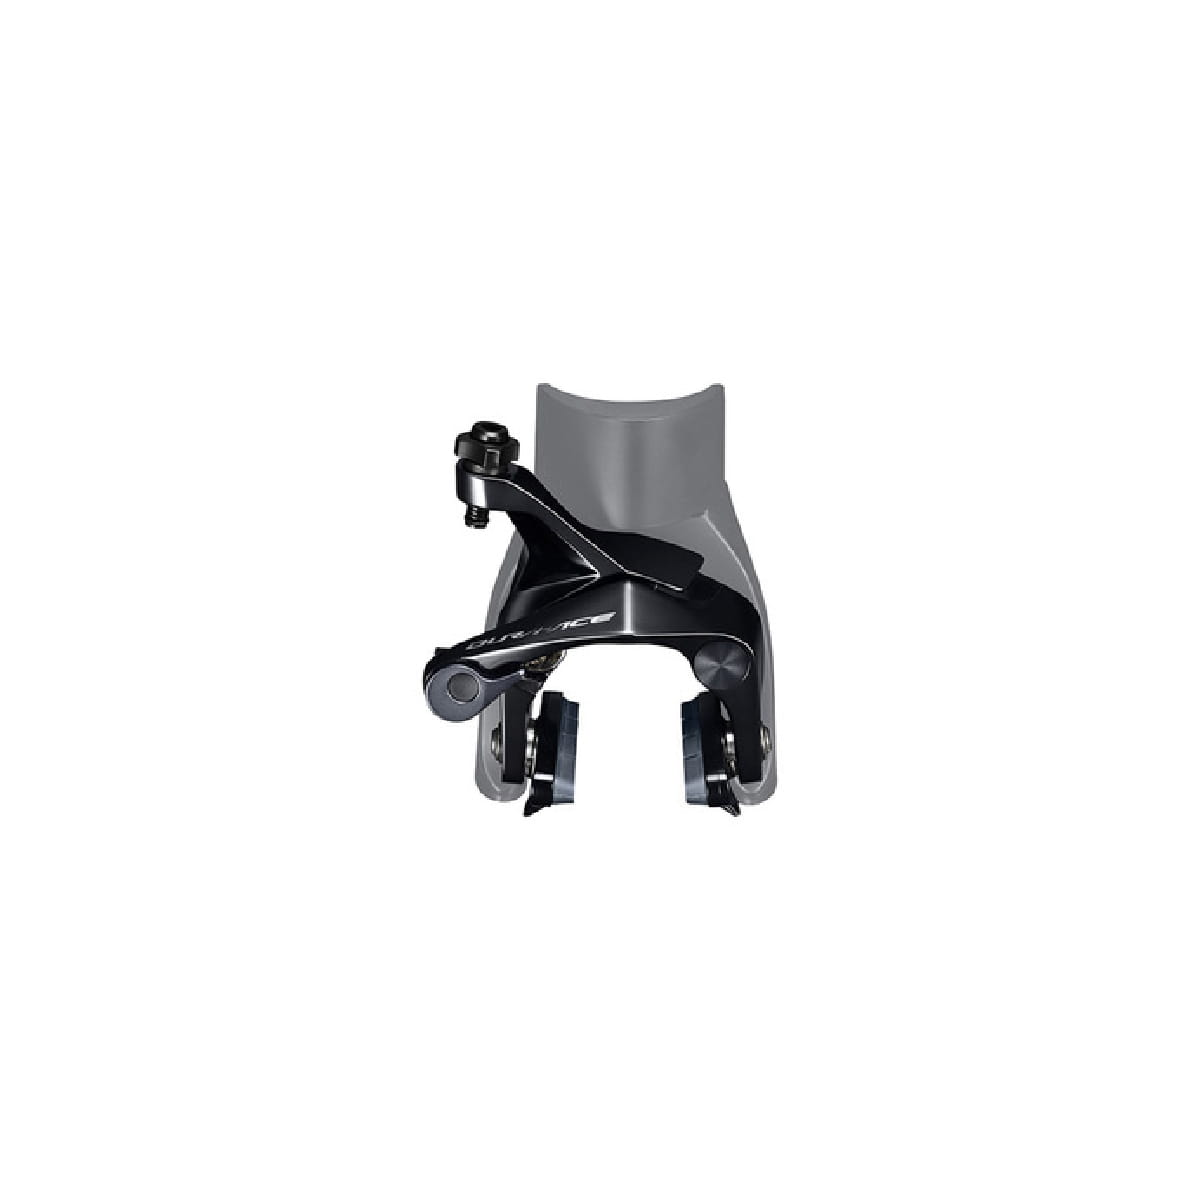 FREIN AVANT SHIMANO DURA-ACE BR-R9110-F DIRECT MOUNT